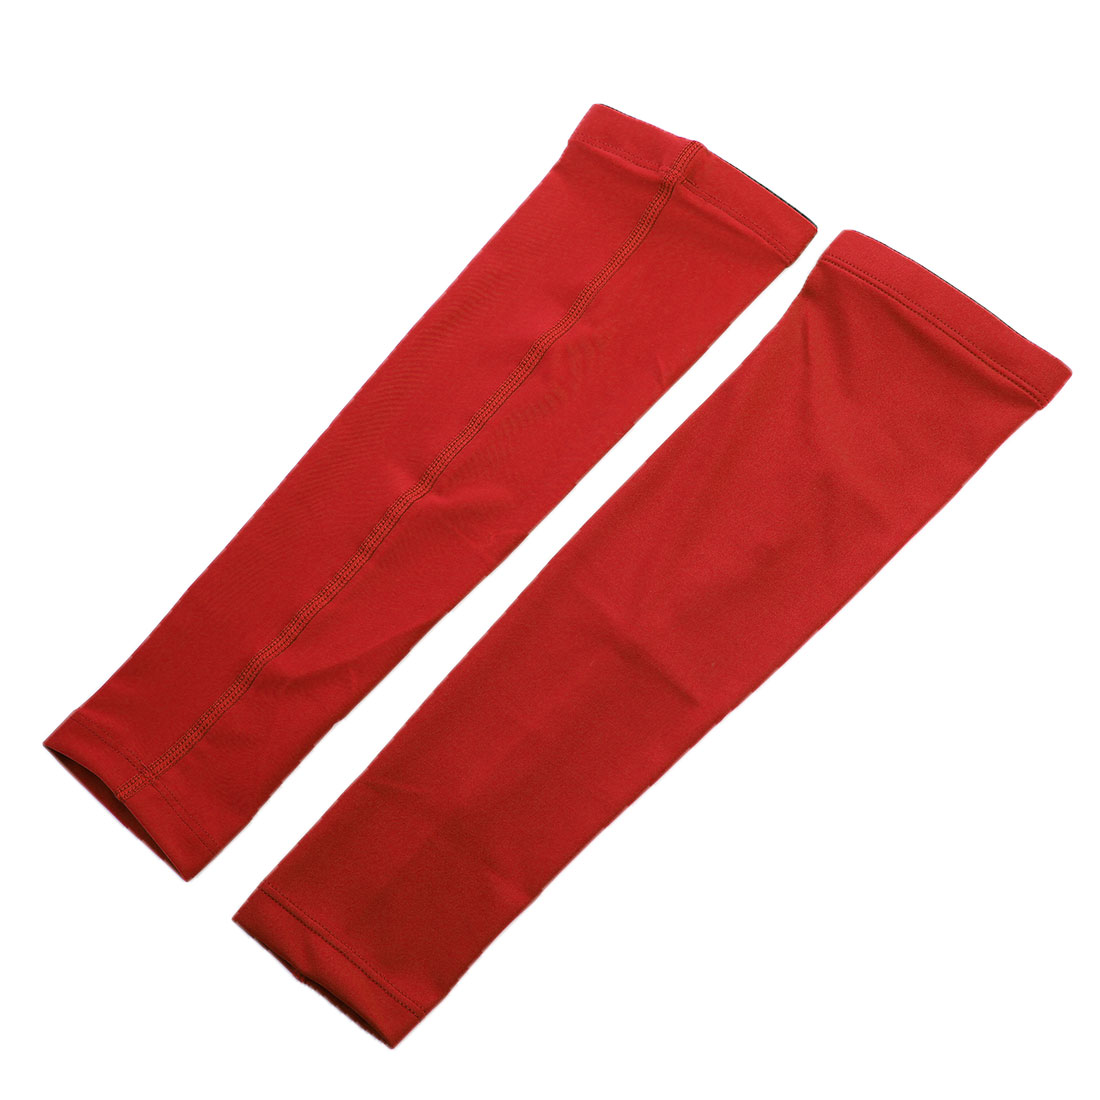 Sports Basketball Cycling Sun Protection Arm Sleeves Band XL Pair